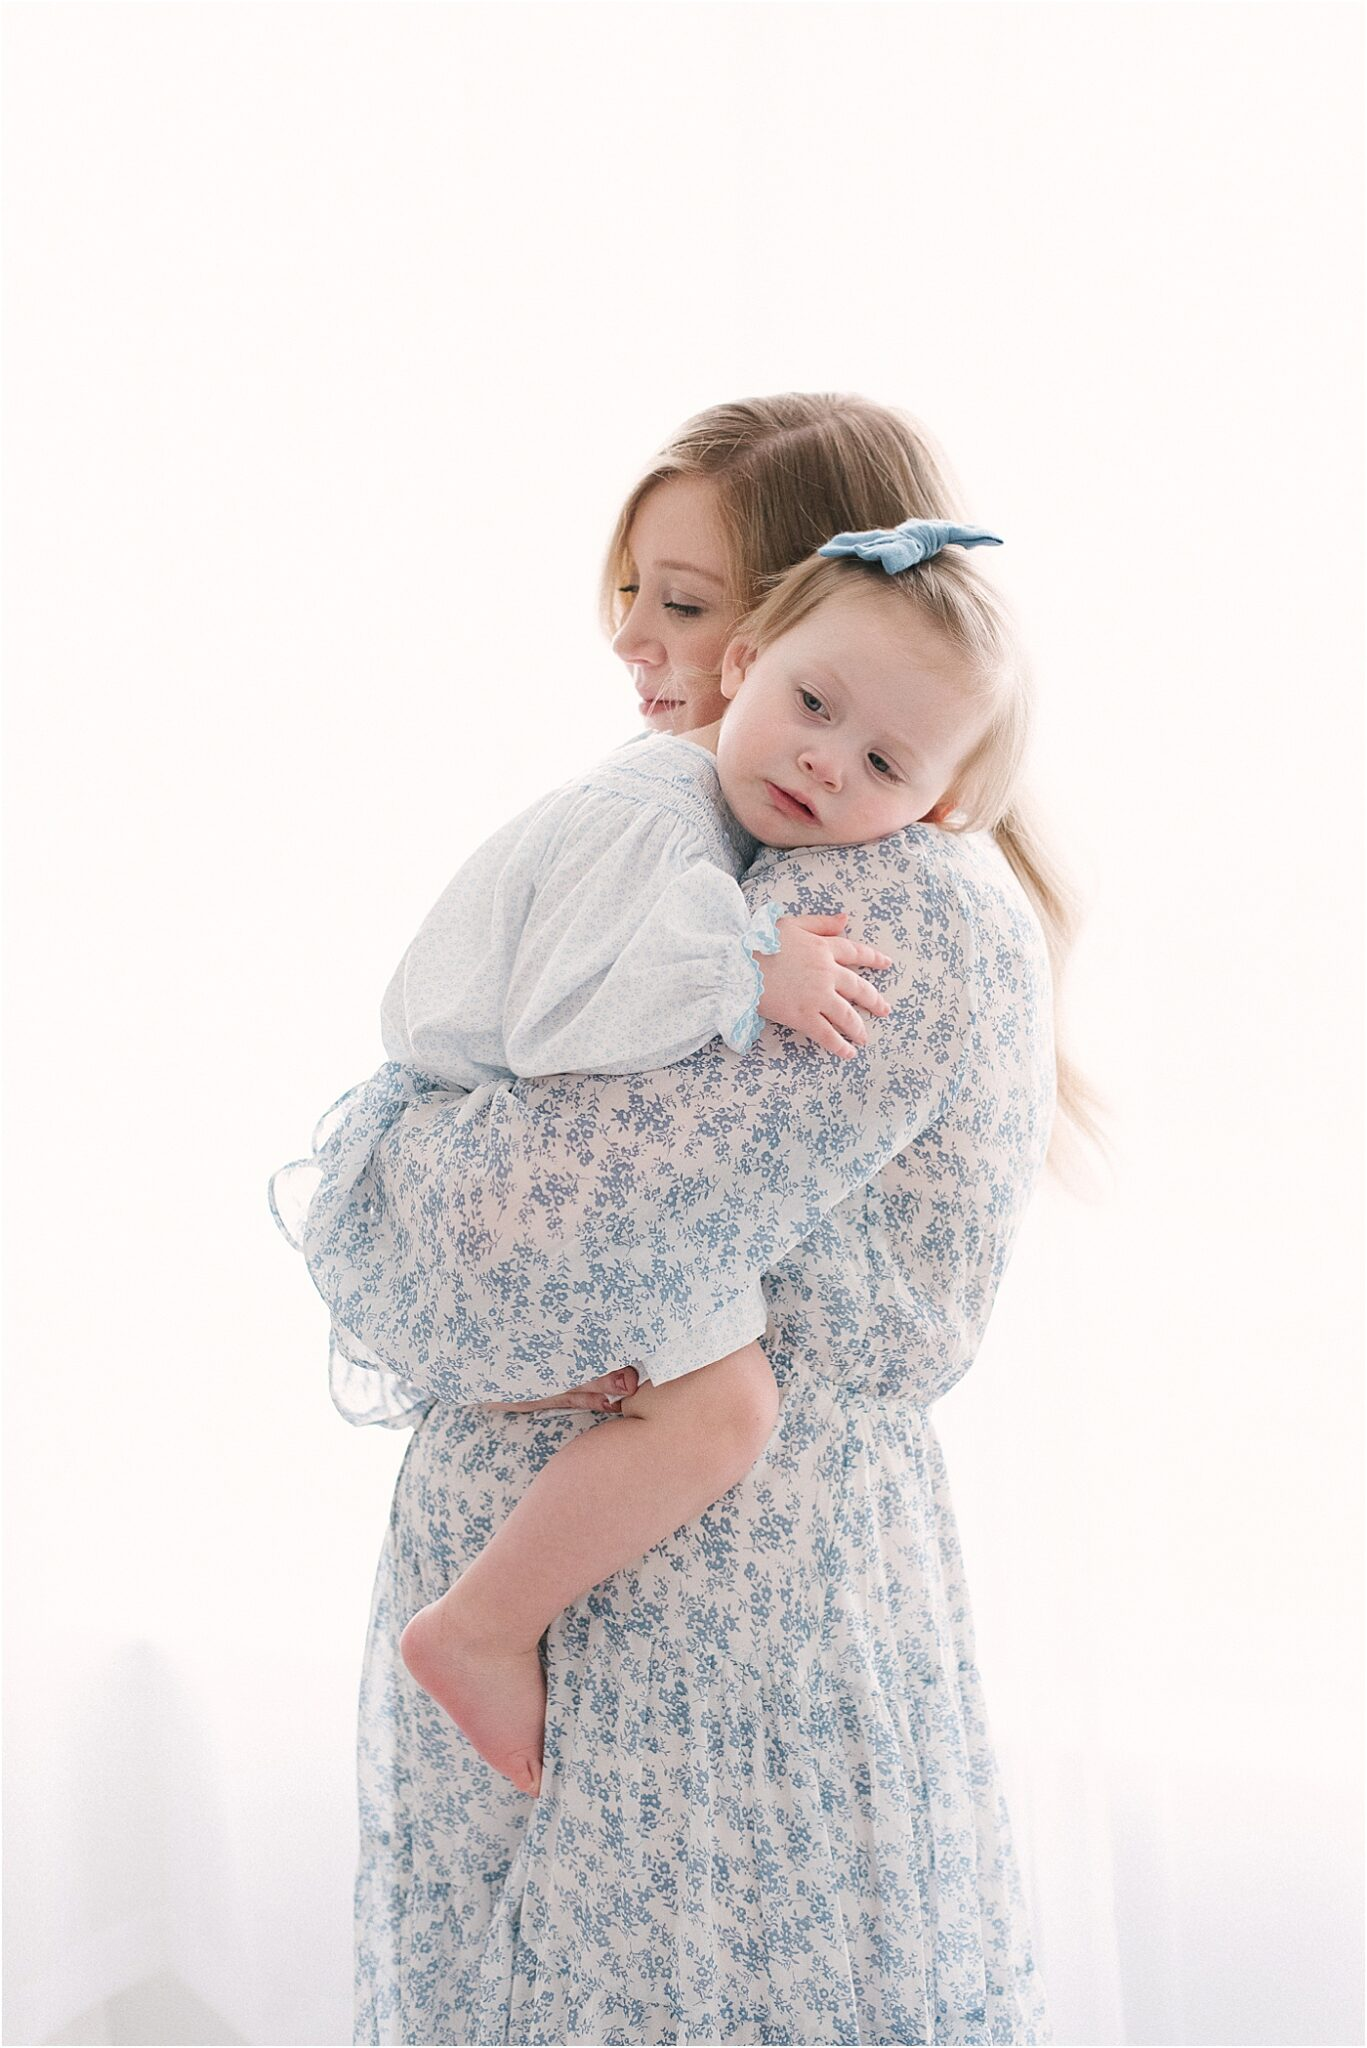 Mom holding her daughter during maternity session. Photo by Carmel IN maternity photographer, Lindsay Konopa Photography.